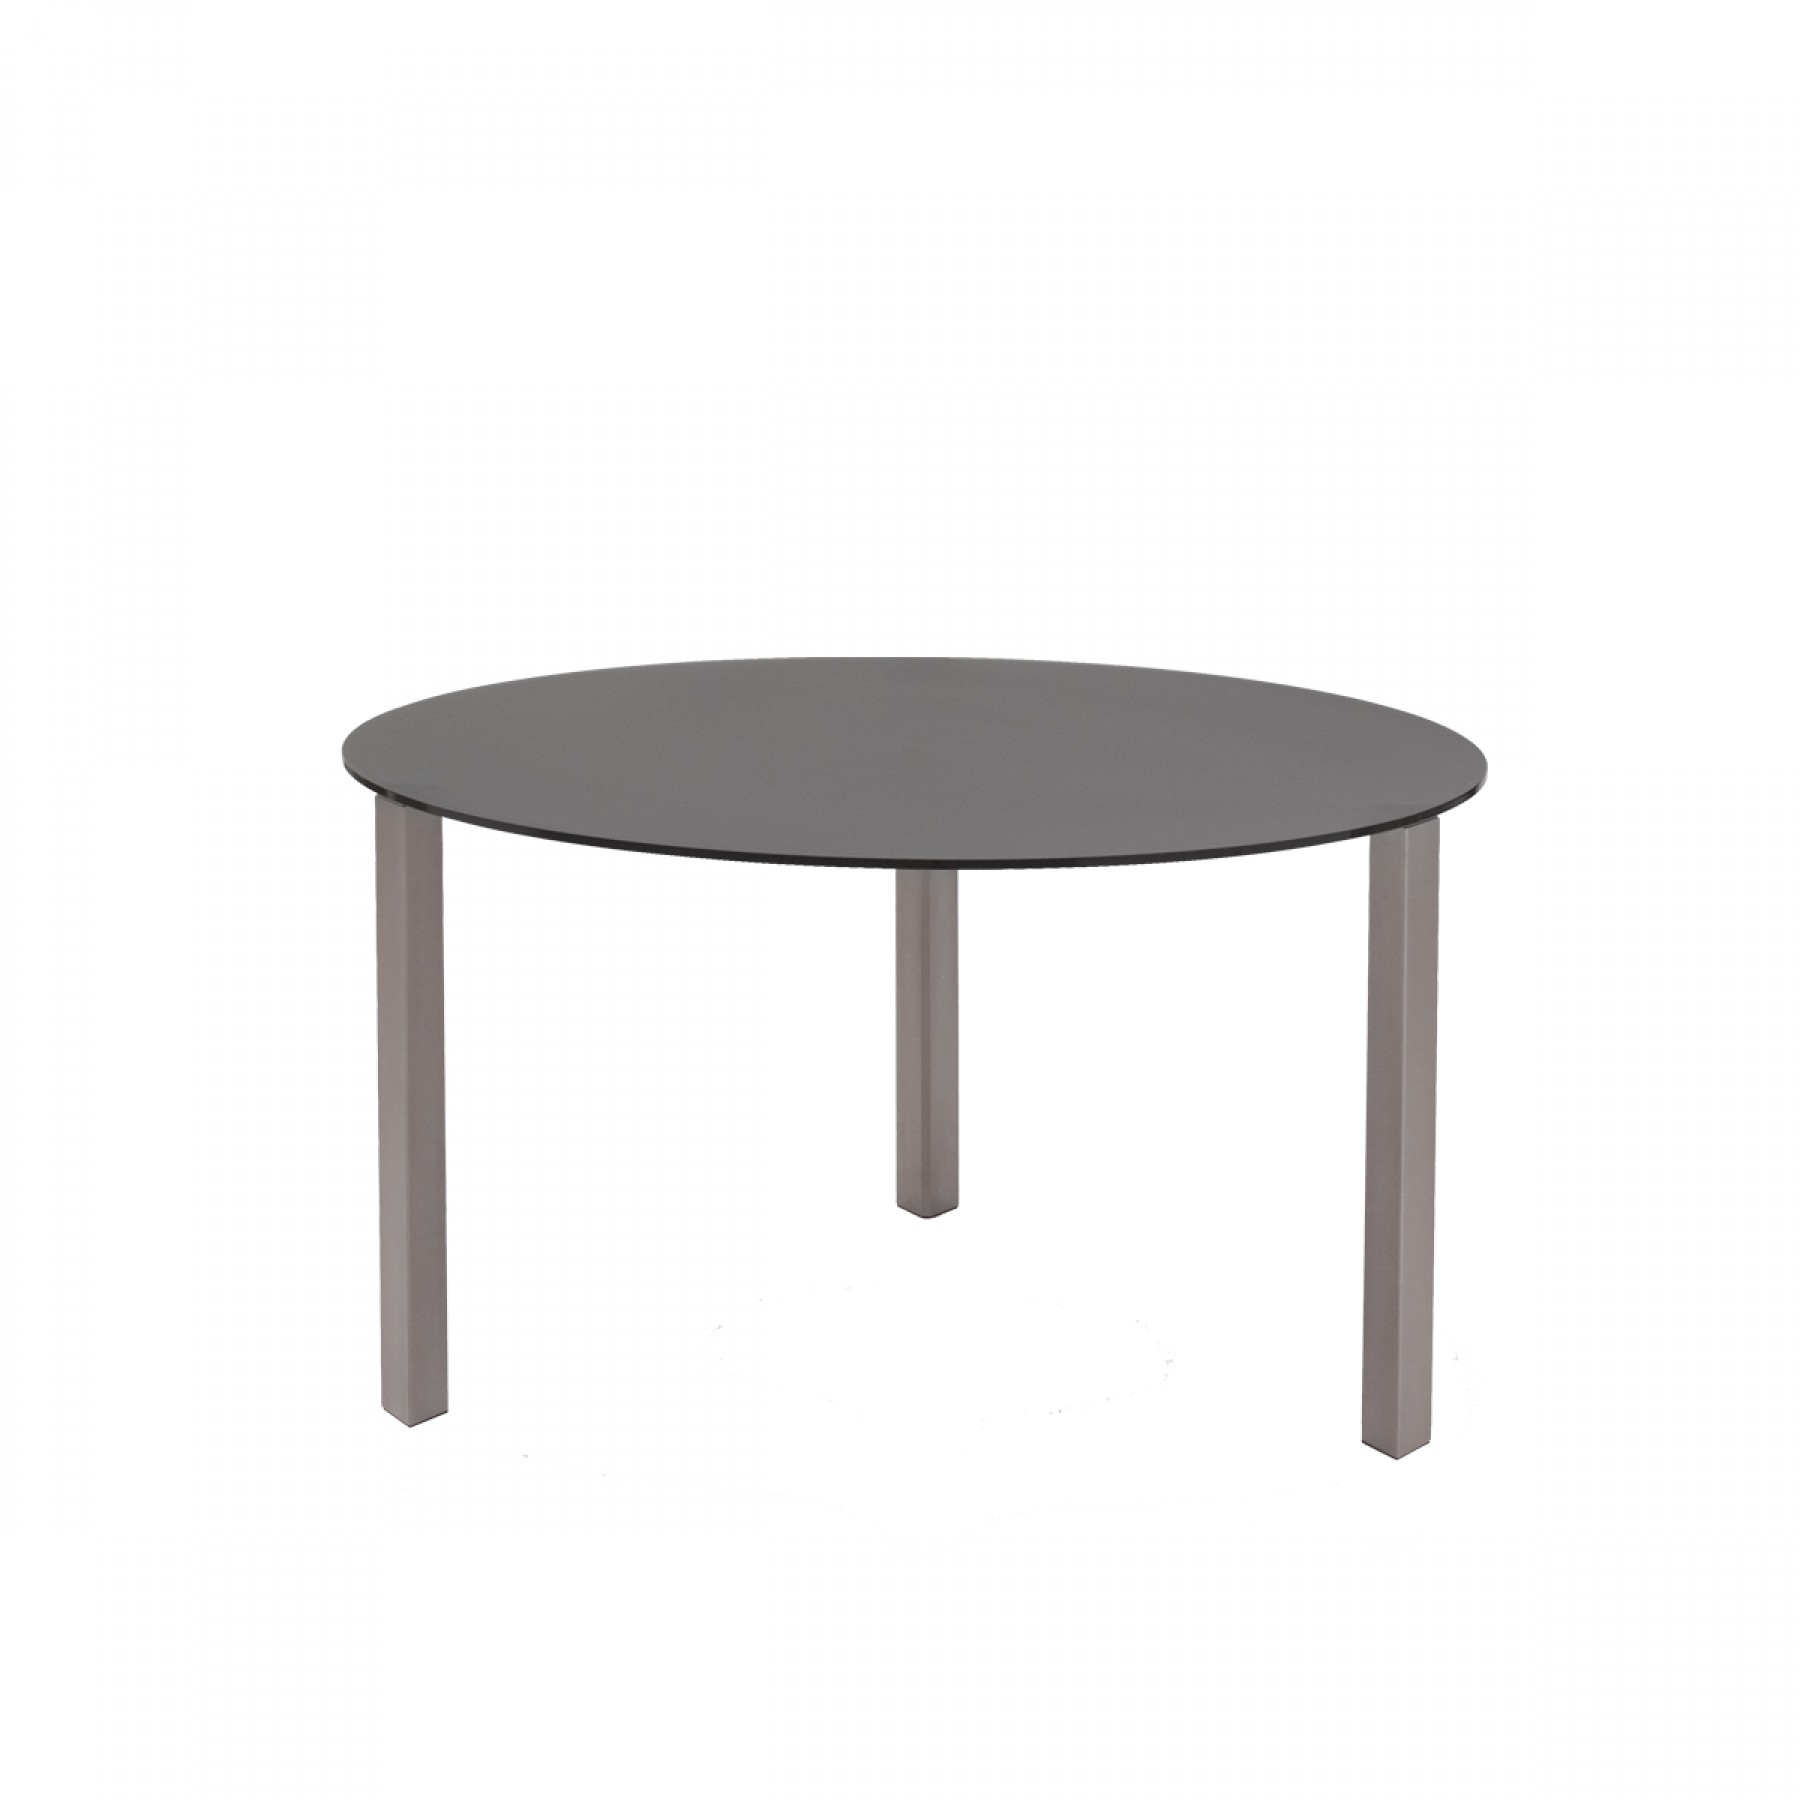 OCCHIO ROUND GLASS DINING TABLE Beyond Furniture